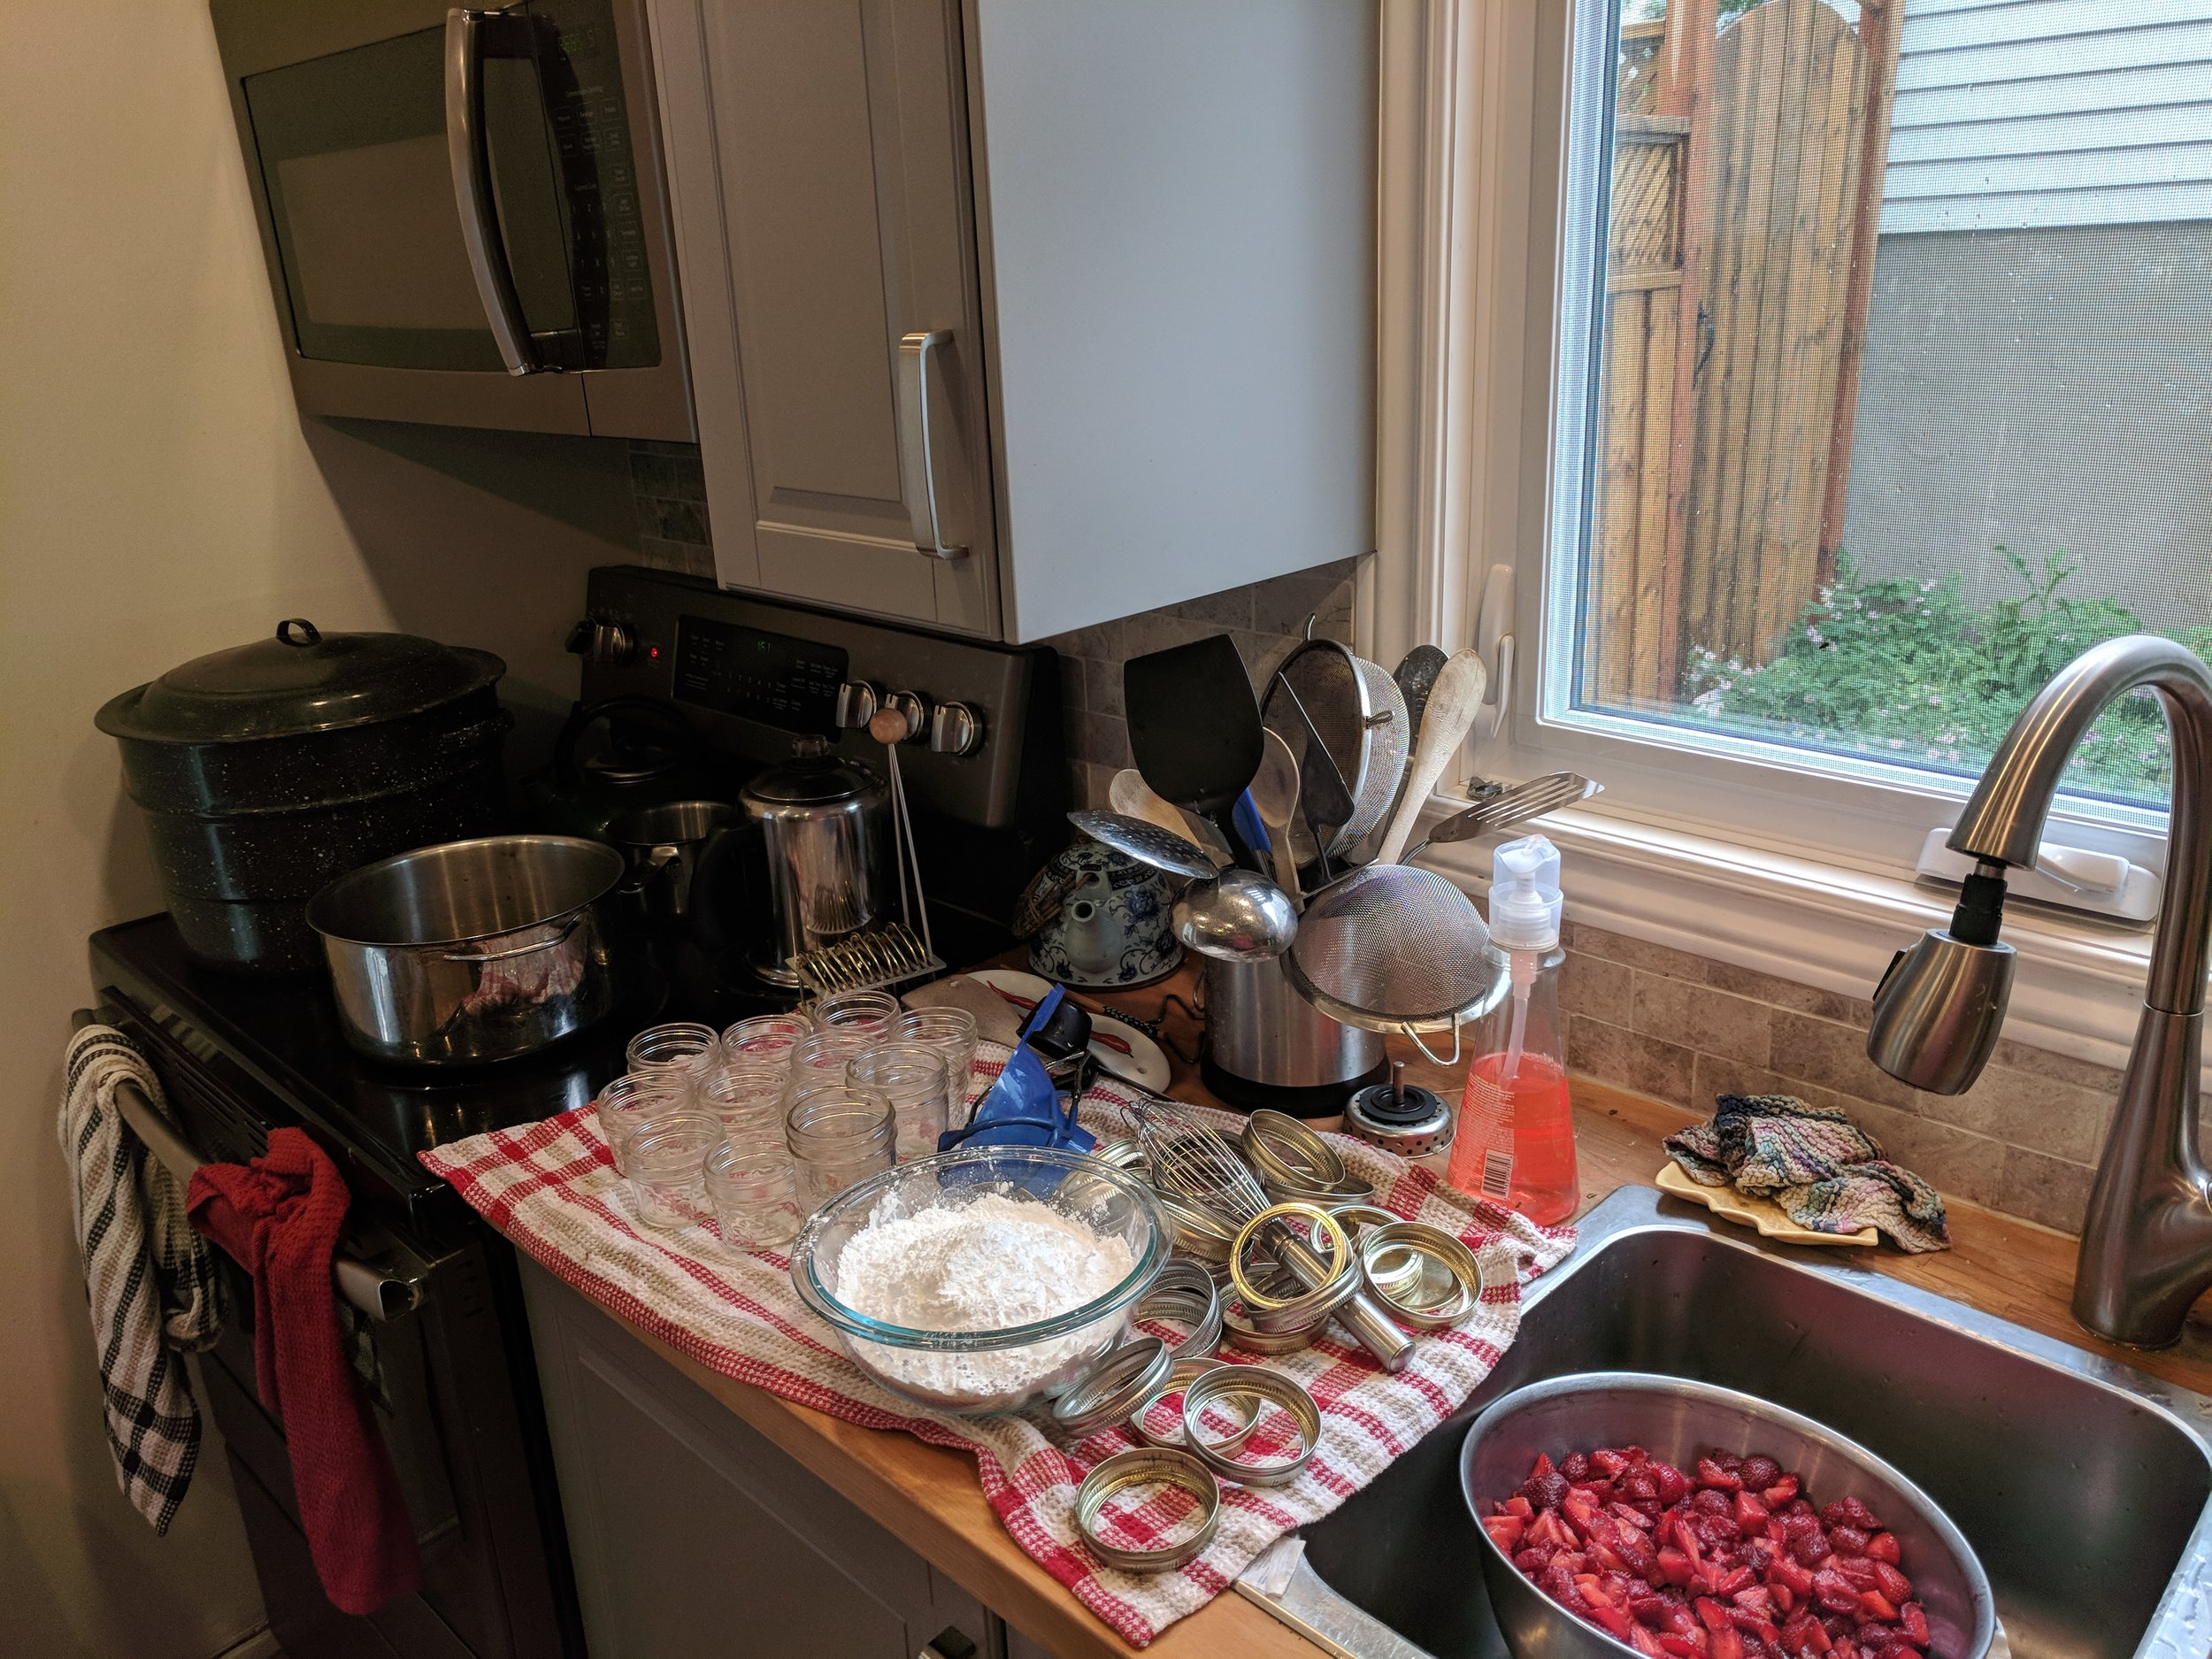 Mise en place. Hey, don't judge. Messy, yet clean.